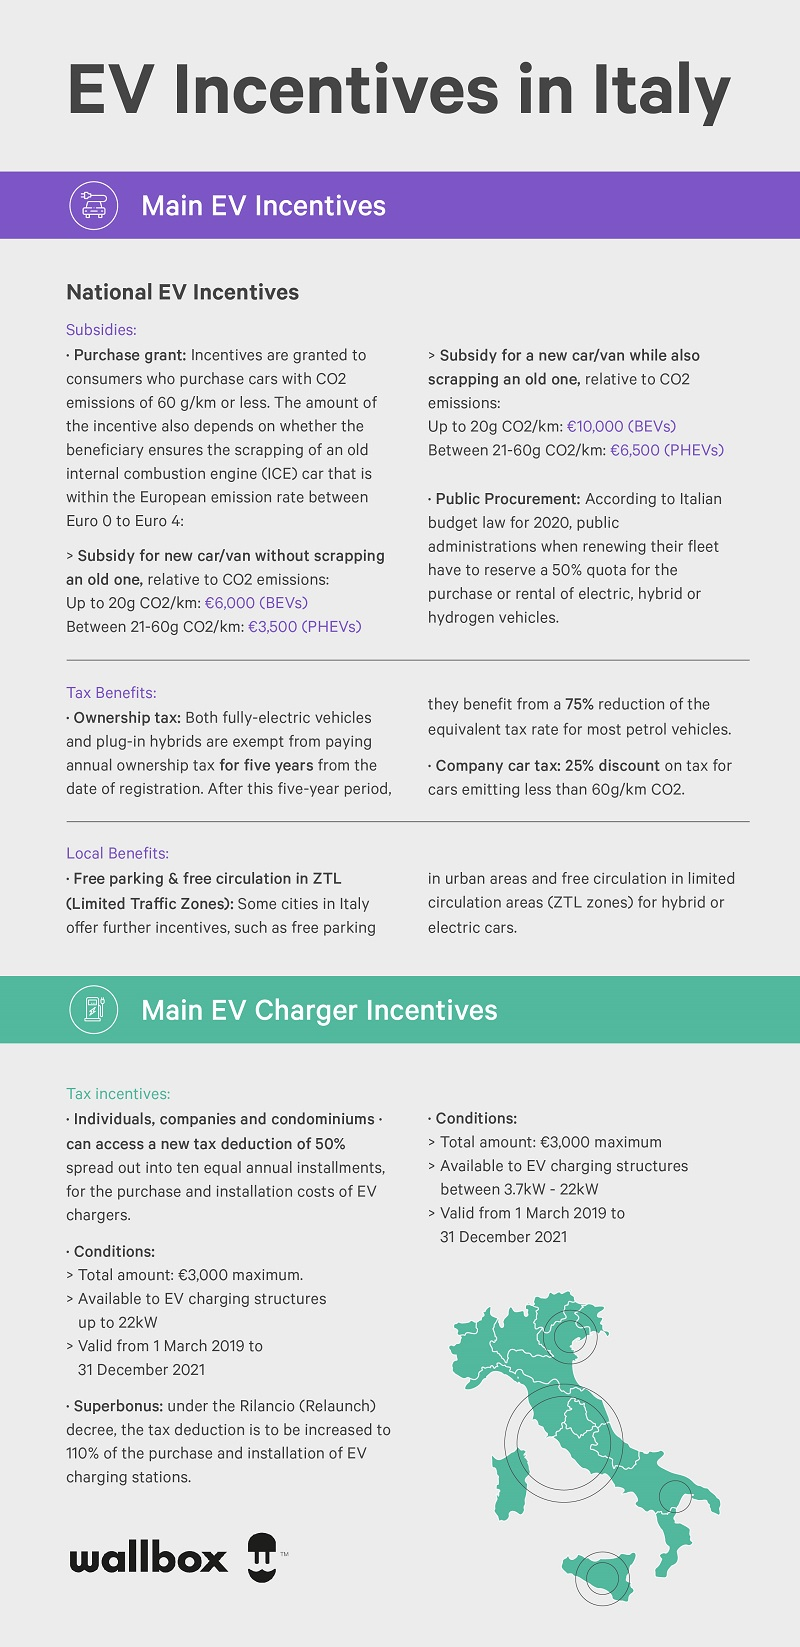 italy ev incentives  infographic - wallbox